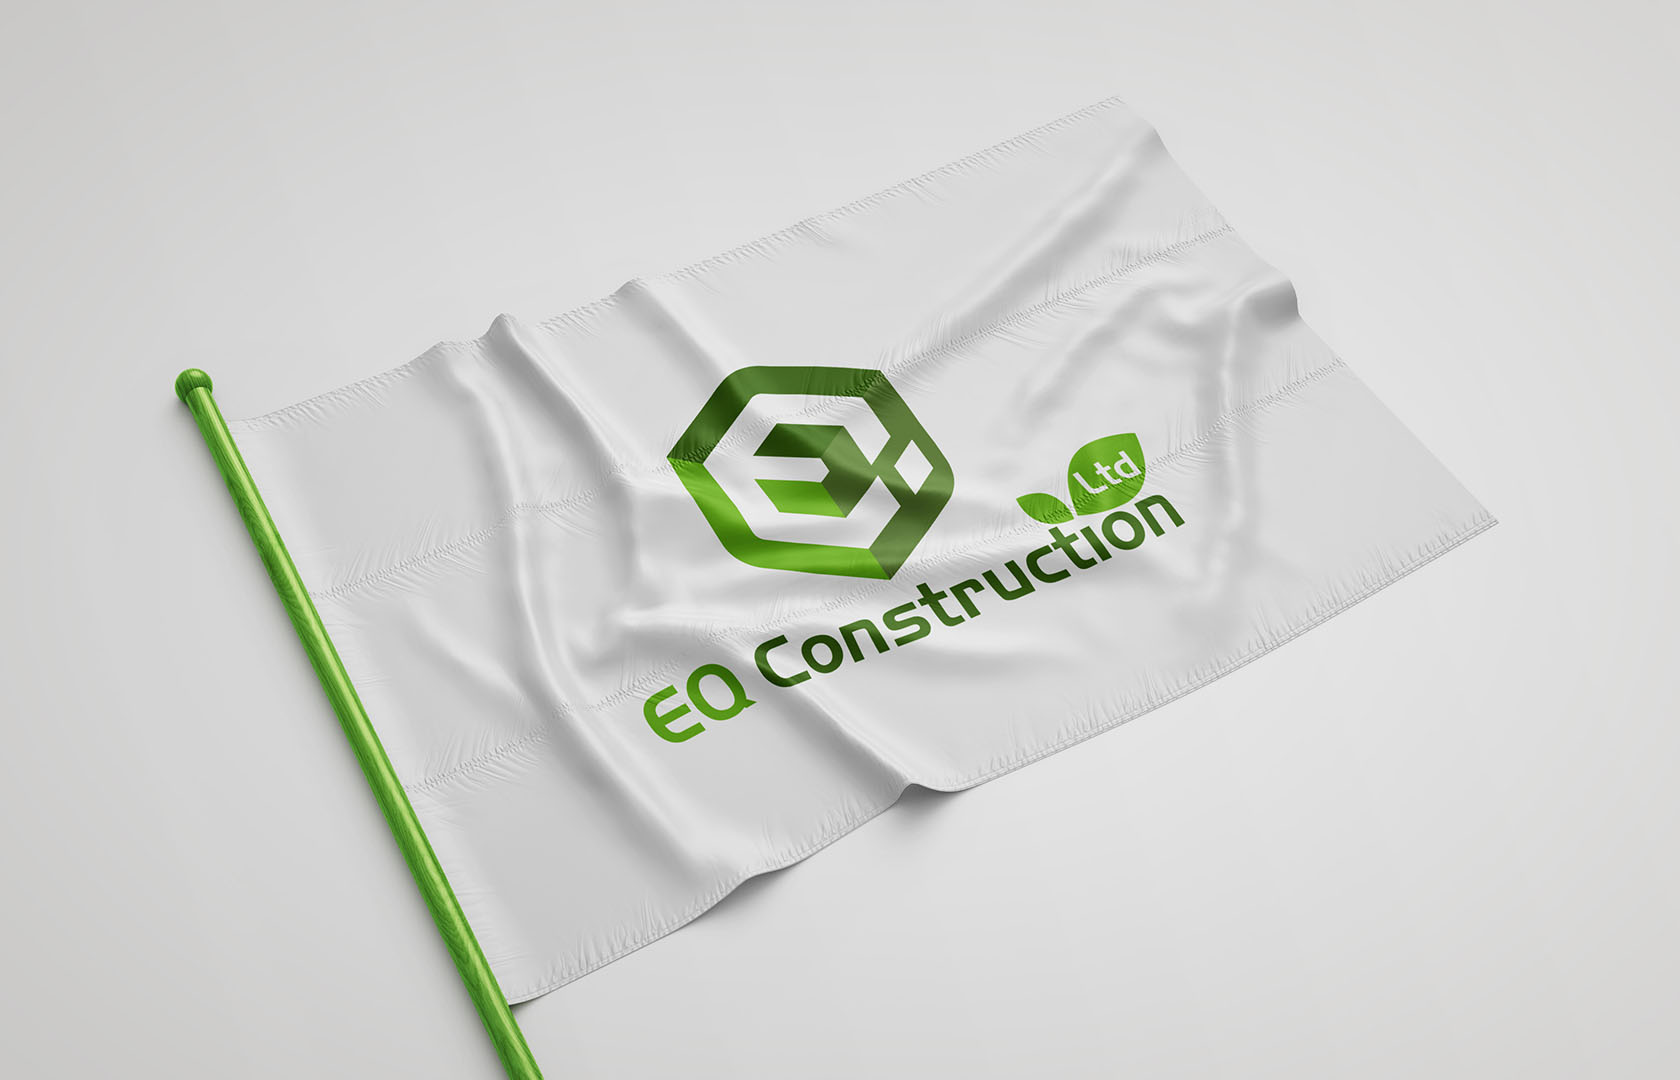 EQ Construction Ltd